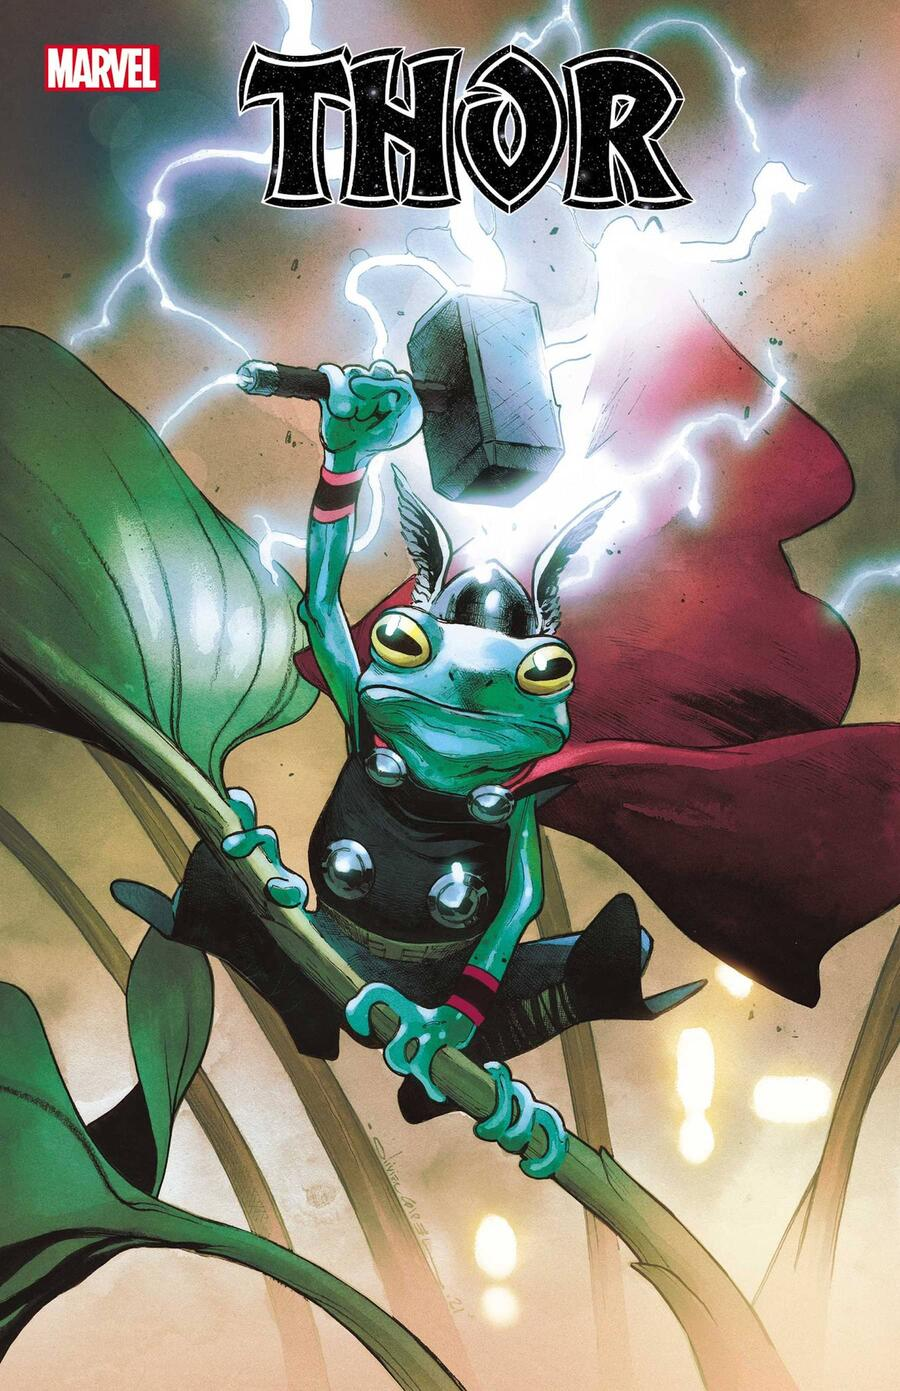 THOR #18 cover by Olivier Coipel